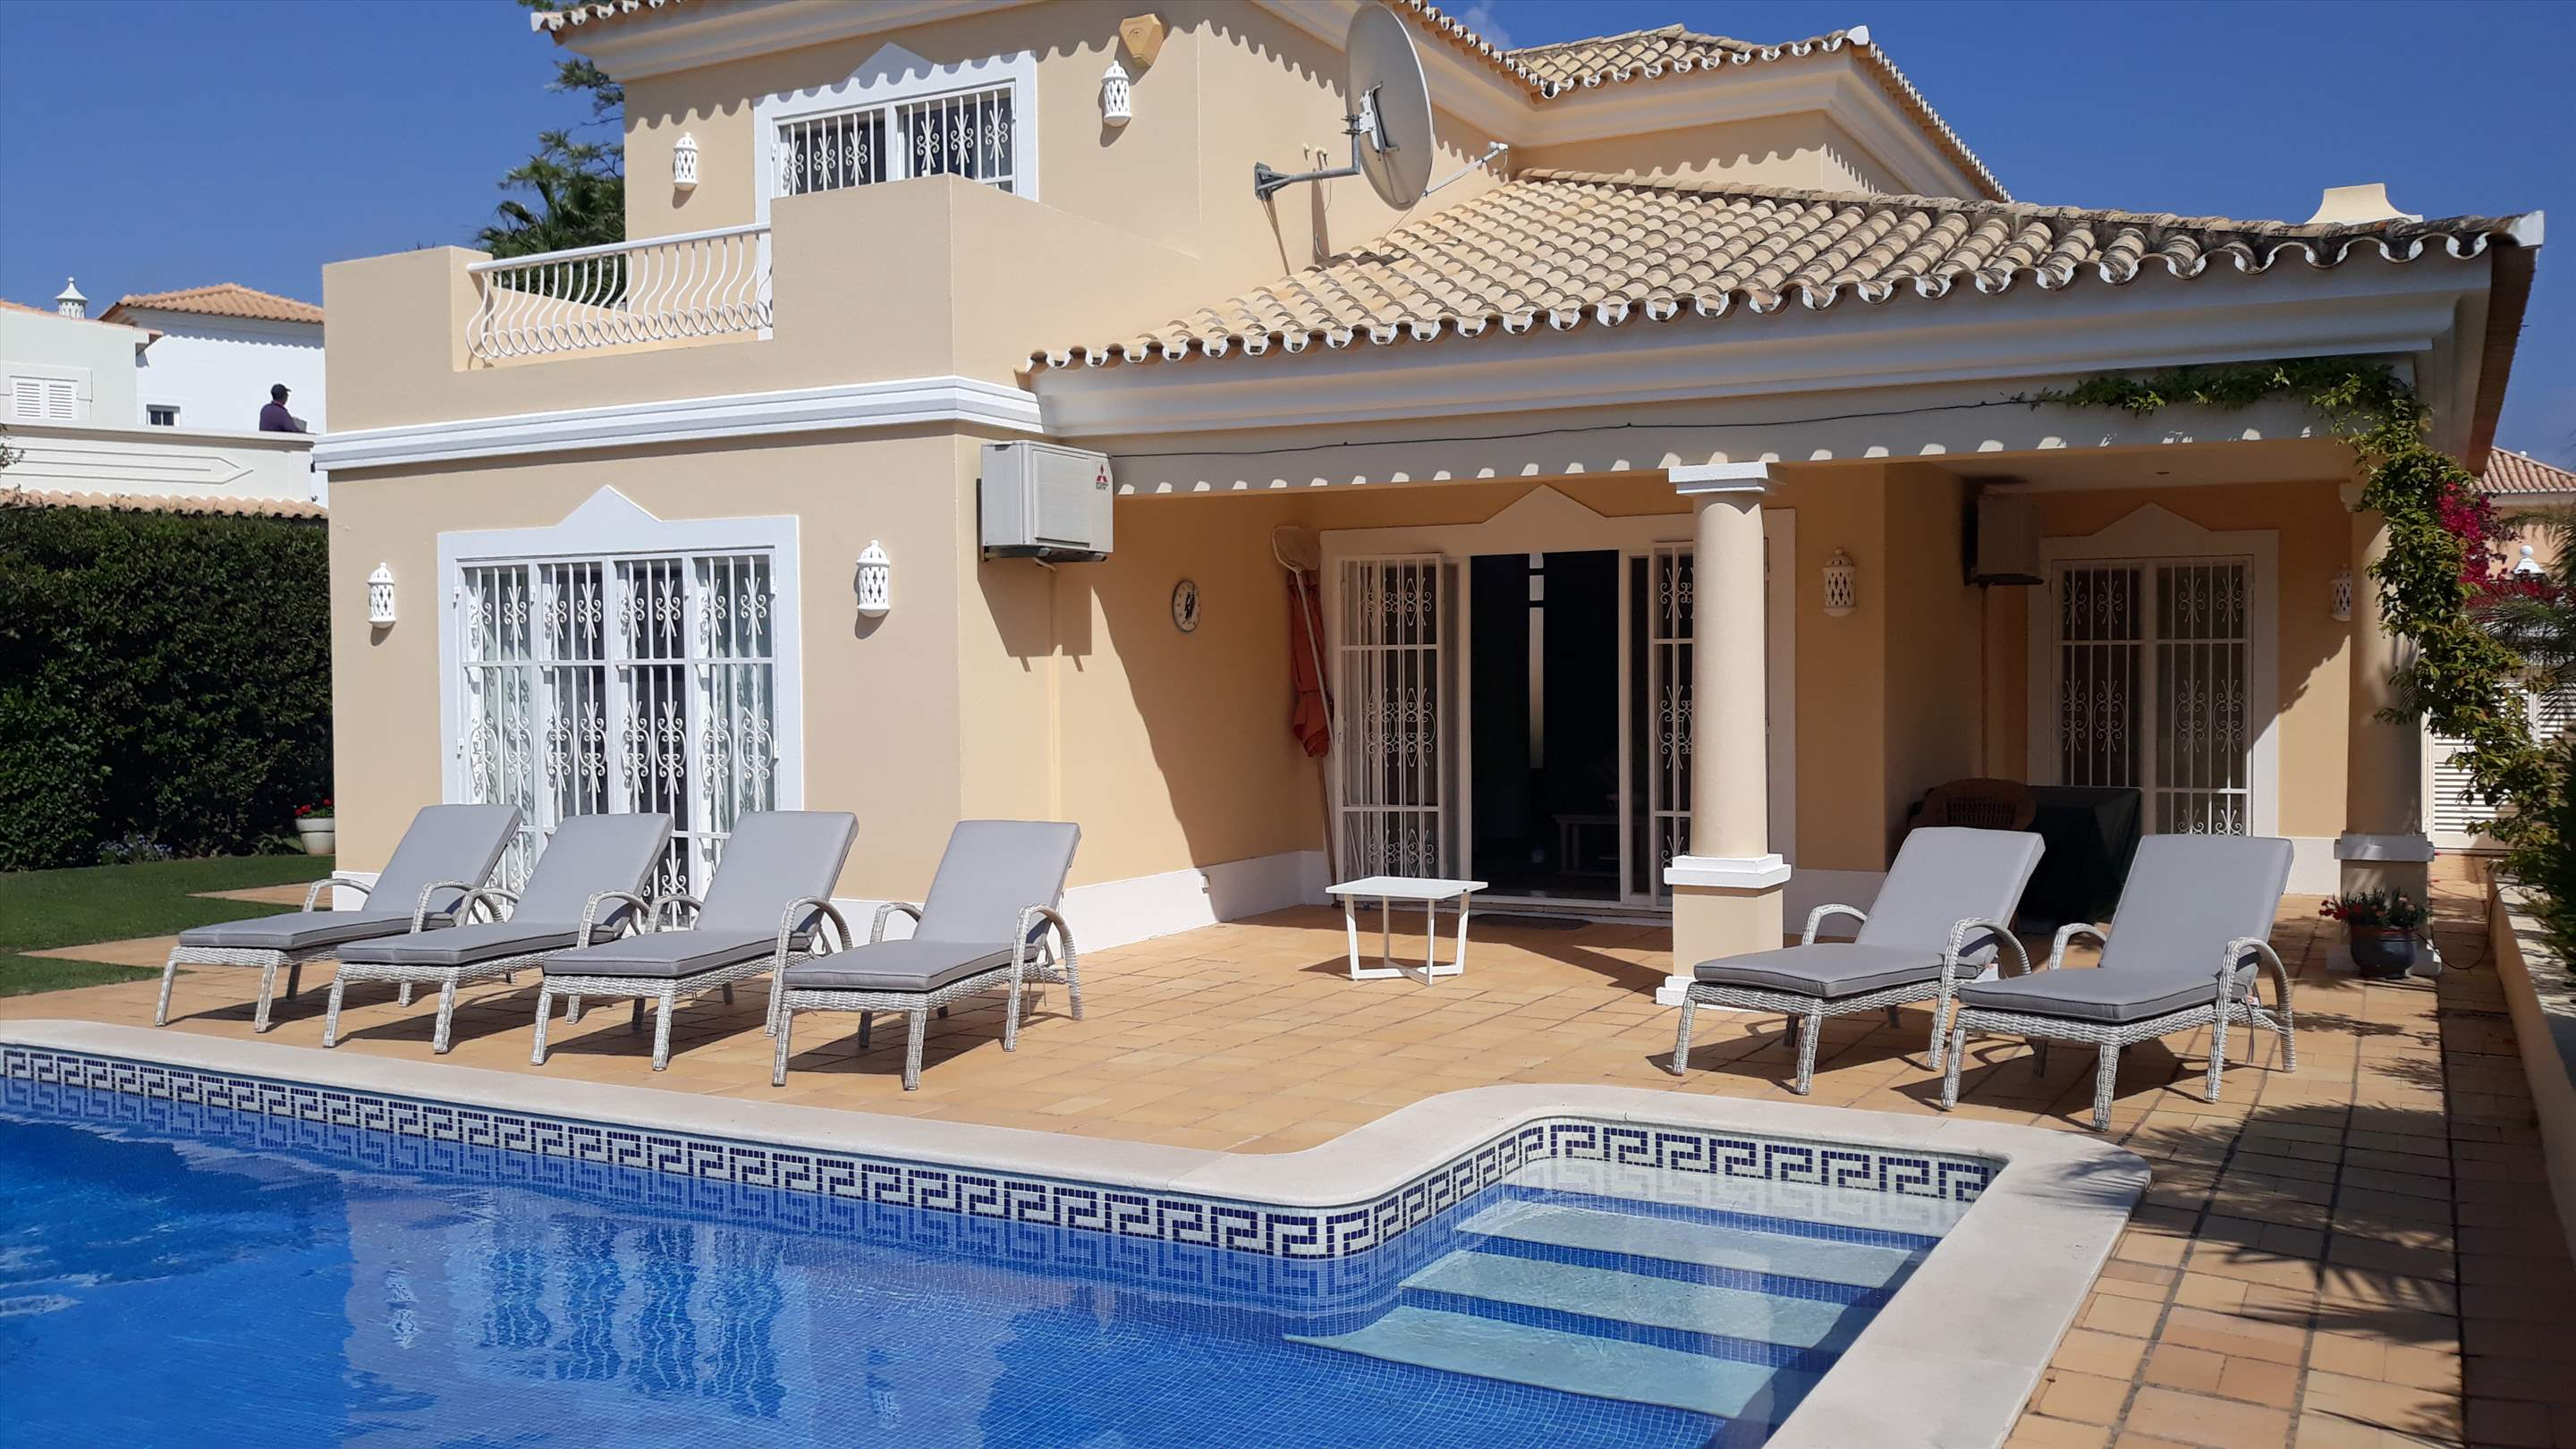 Casa Rosada, 3 bedroom villa in Vale do Lobo, Algarve Photo #1